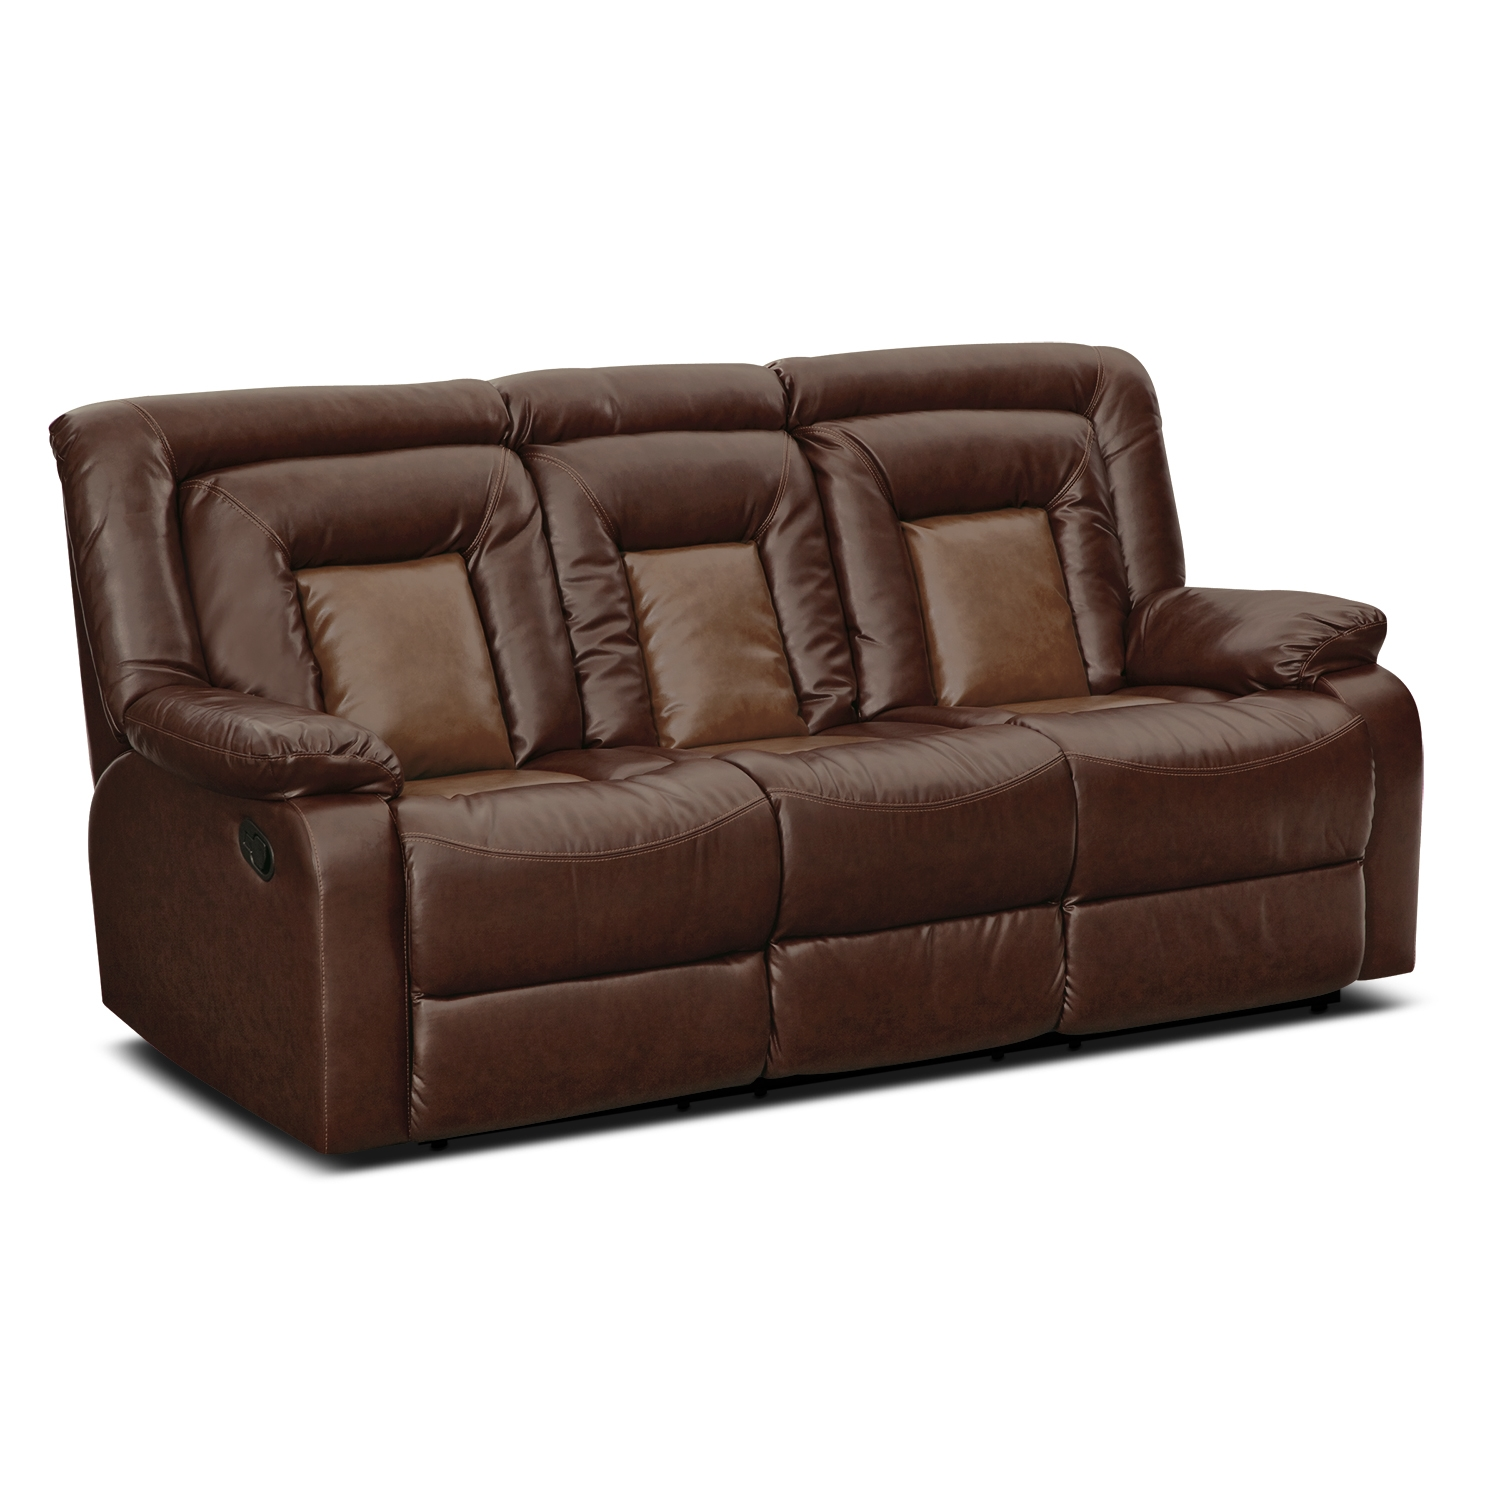 leather sectional sofa bed recliner photo - 4